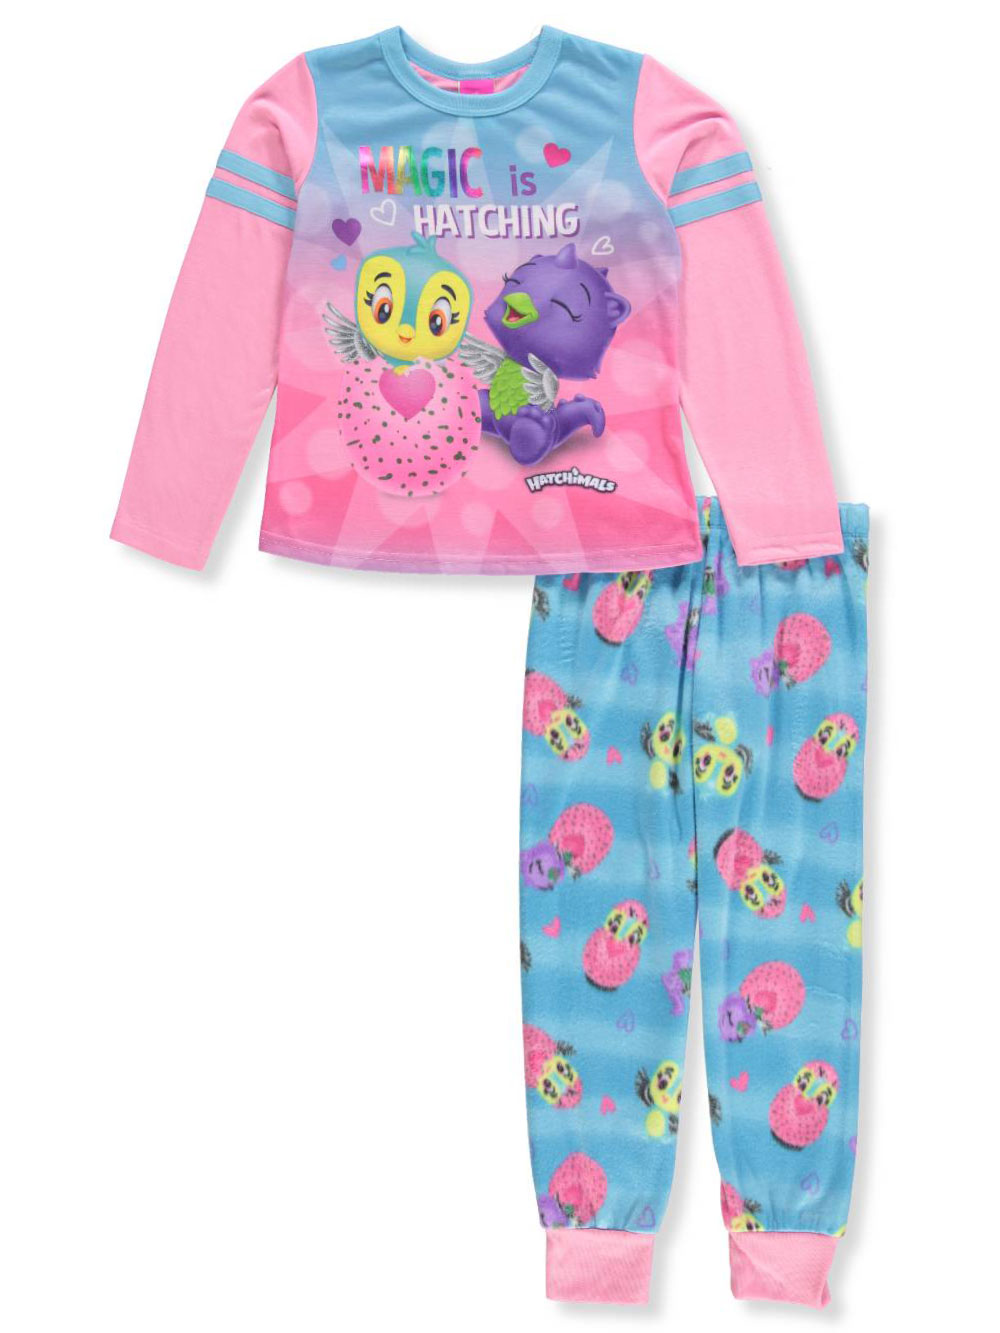 61ac085a6276 Girls' 2-Piece Pajamas by Hatchimals in Pink/blue